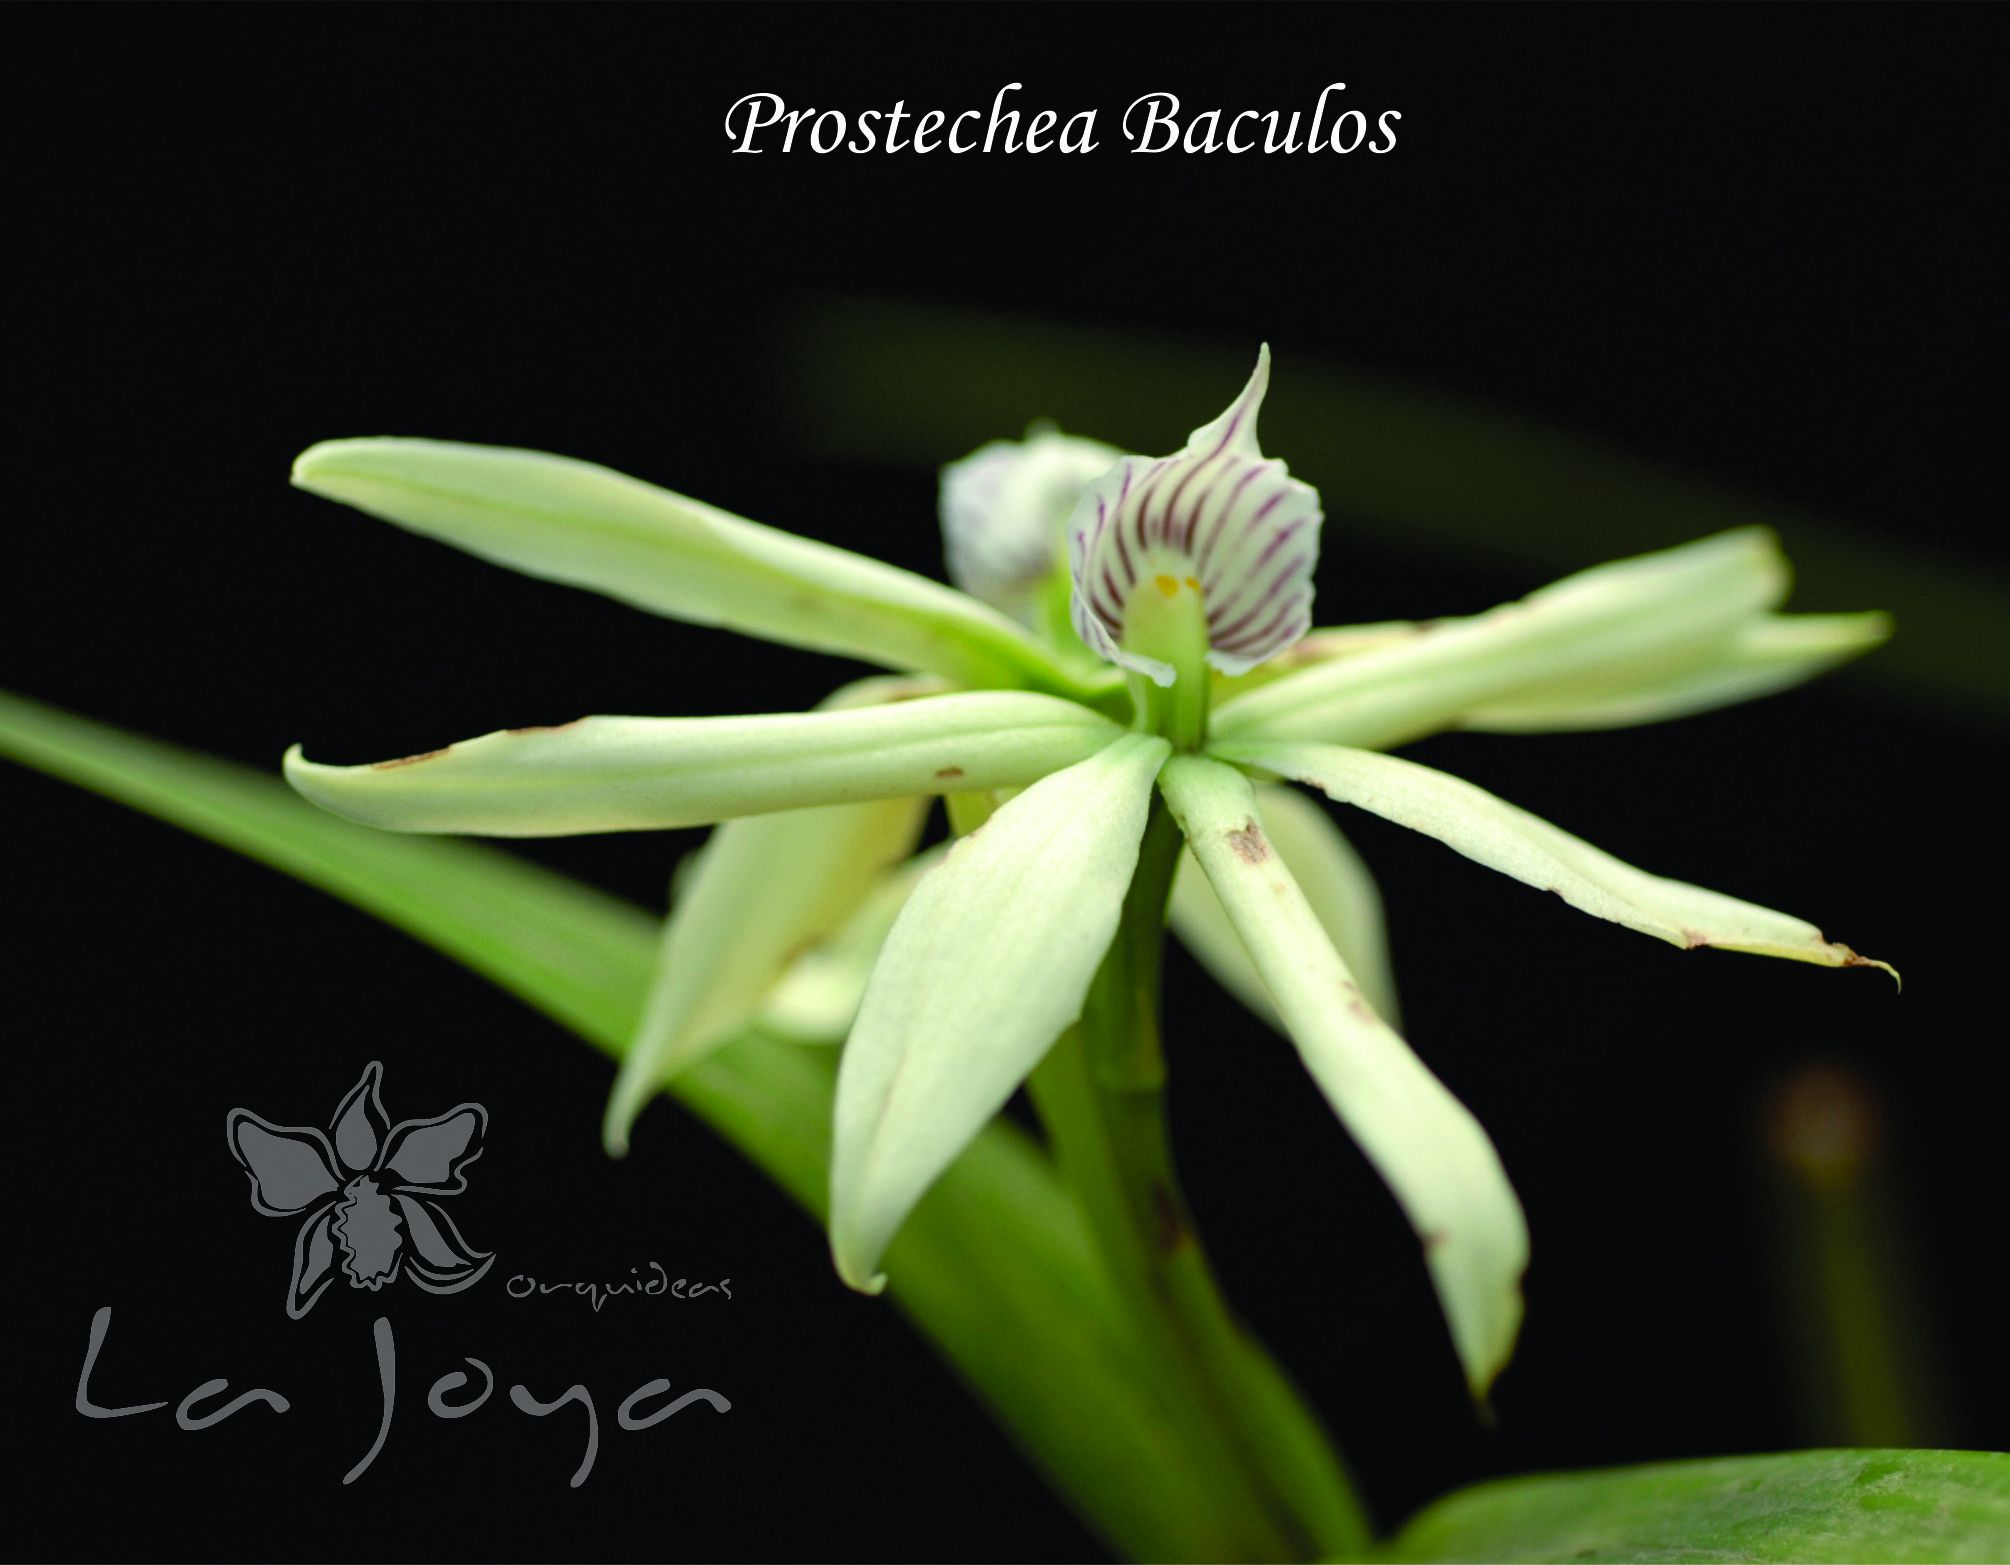 Prostechea Baculos